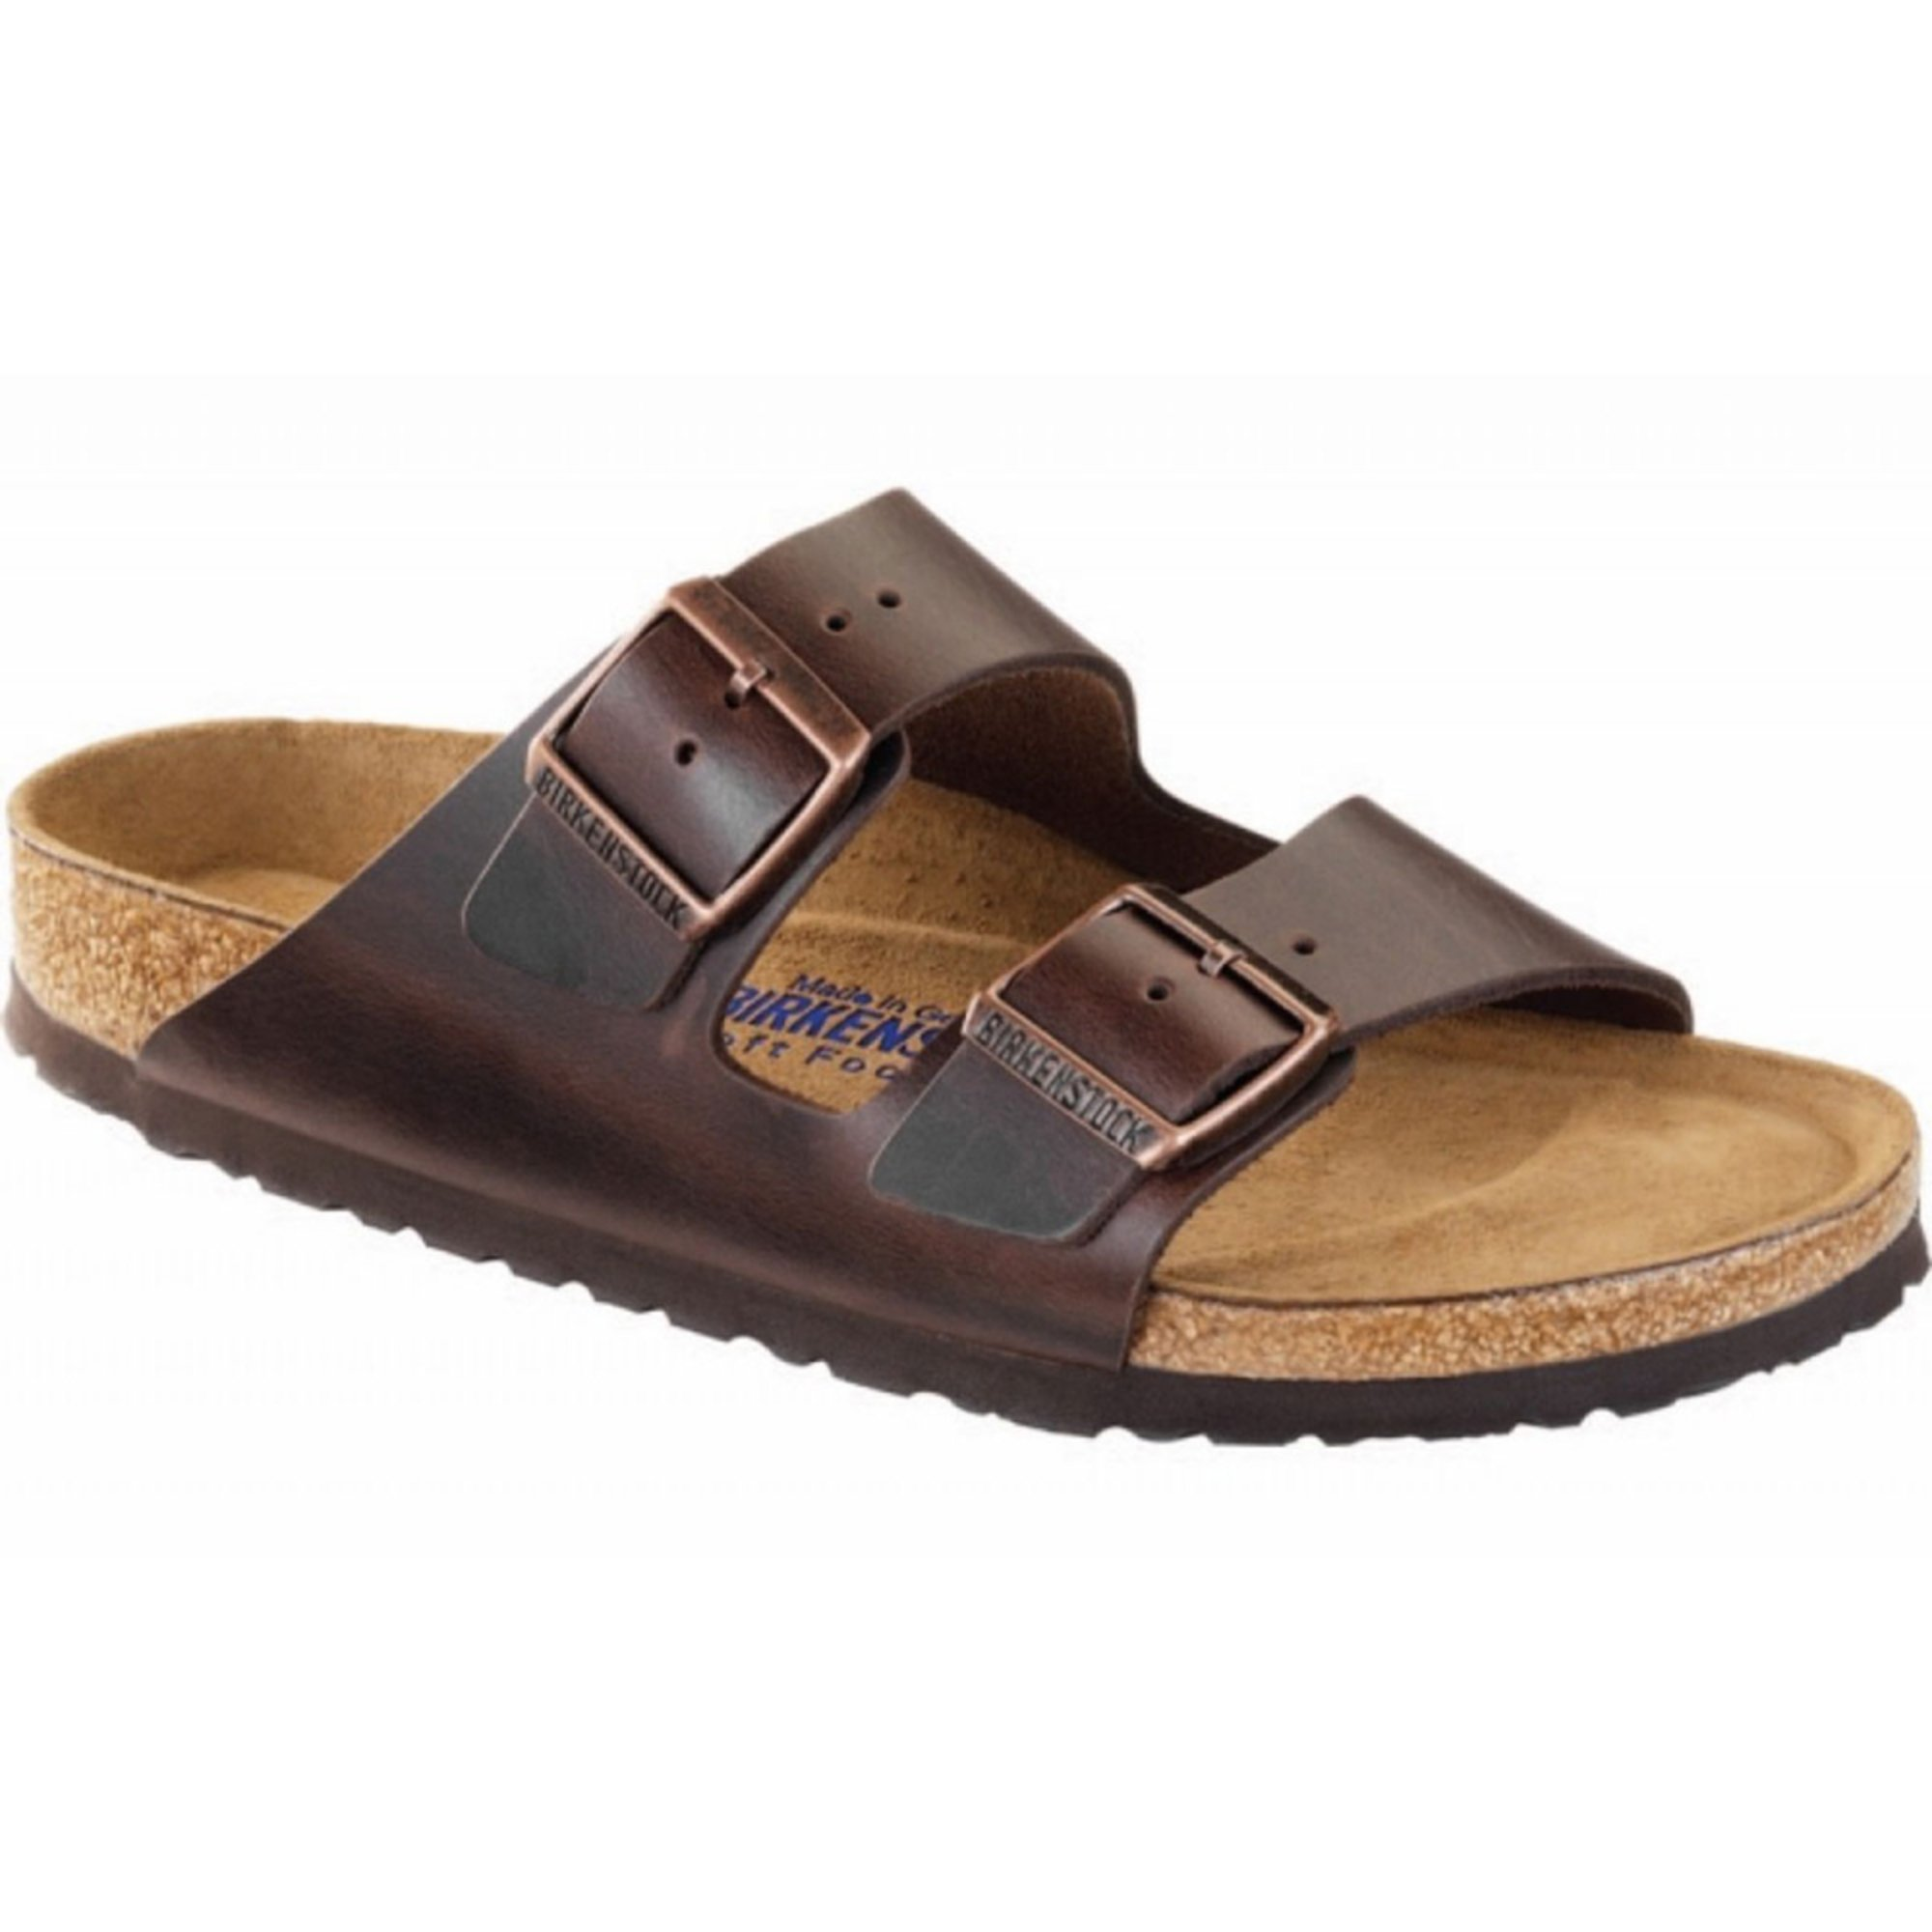 Birkenstock Womens Shoes Clearance